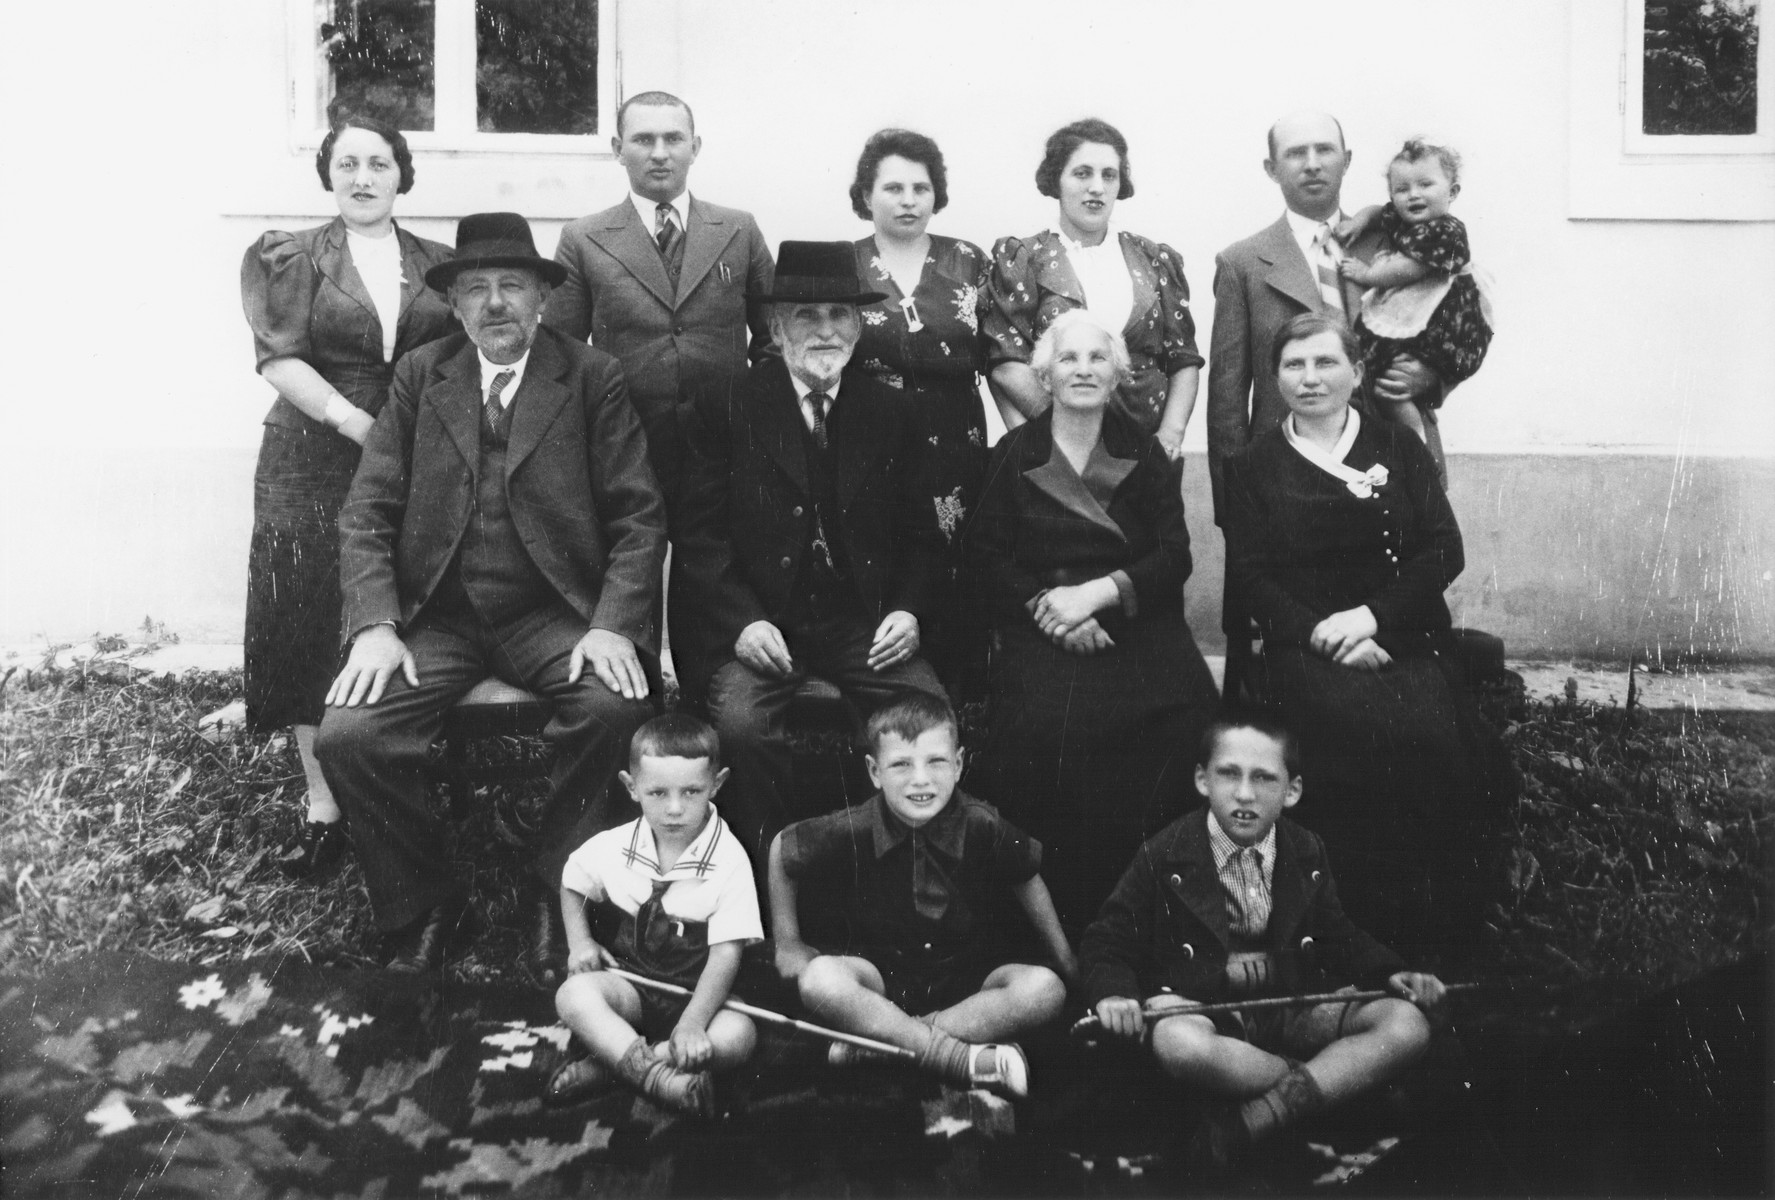 Portrait of a large family in Raduati, Romania taken on the occasion of visiting relatives from Canada.  From left to right.  Front row: Marice Kastner, Sidney Kastner, Osias (Osy) Kastner.  Middle row: David Schwamenthal, Srul Kastner, Malka Kastner and Sophie Kastner.  Back row: Edith Schwmenthal Kastner, Avrum Kastner, Rose (Koka) Kastner, Clara Schwamenthal Kastner, Yankel Kastner and Bella Kastner.  Avrum Kastner, Clara Kastner, Yankel Kastner, David Schwamenthal, and Srul and Malka Kastner all perished in Transnistria.  Sophie Kastner was shot and killed by the Iron Guard during the Radauti deportation in October 1941.  Rose and Sidney Kastner returned to Canada having been unsuccessful in persuading their families to join them.  Bella and Osias Kastner were brought up by their aunt Edith Kastner in Raduati following their liberation from Transnistria.